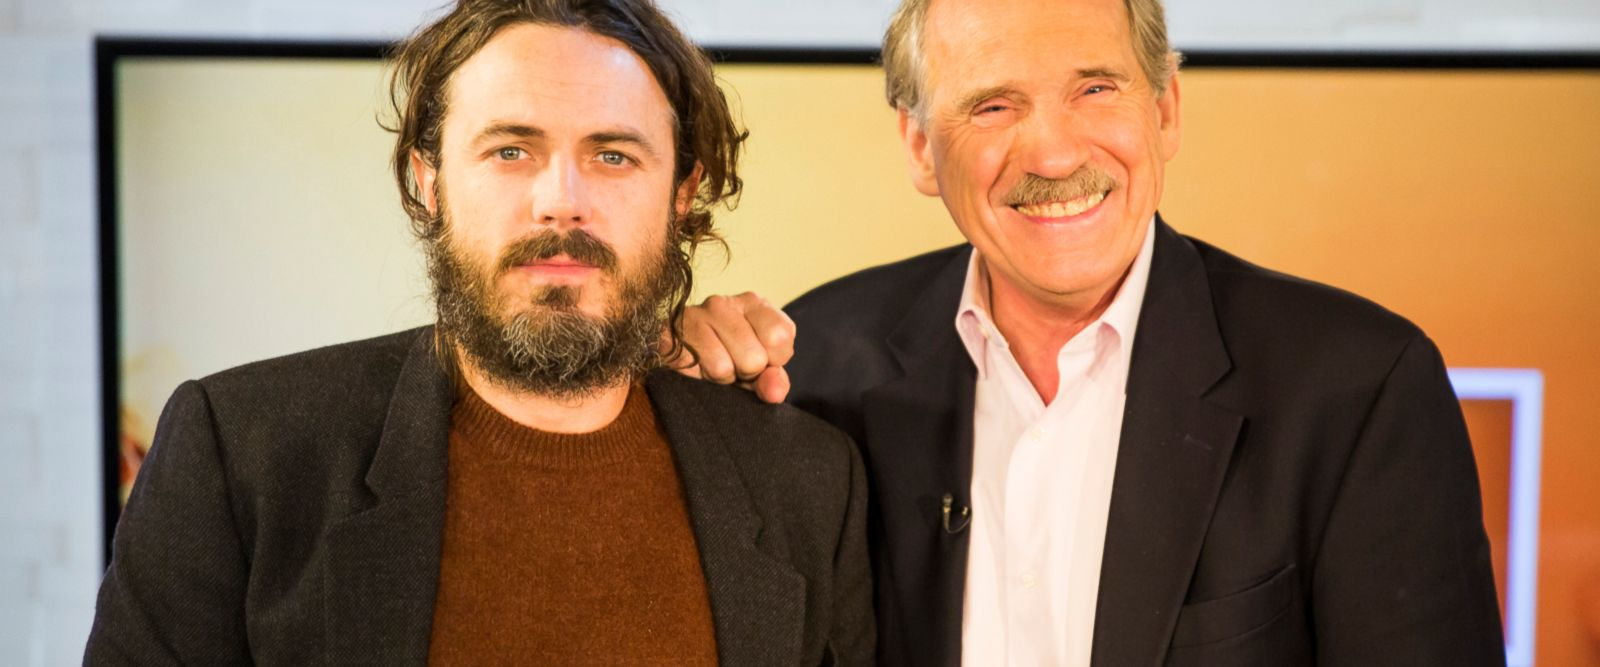 VIDEO: Oscar nominee Casey Affleck talks about his role in 'Manchester by the Sea'